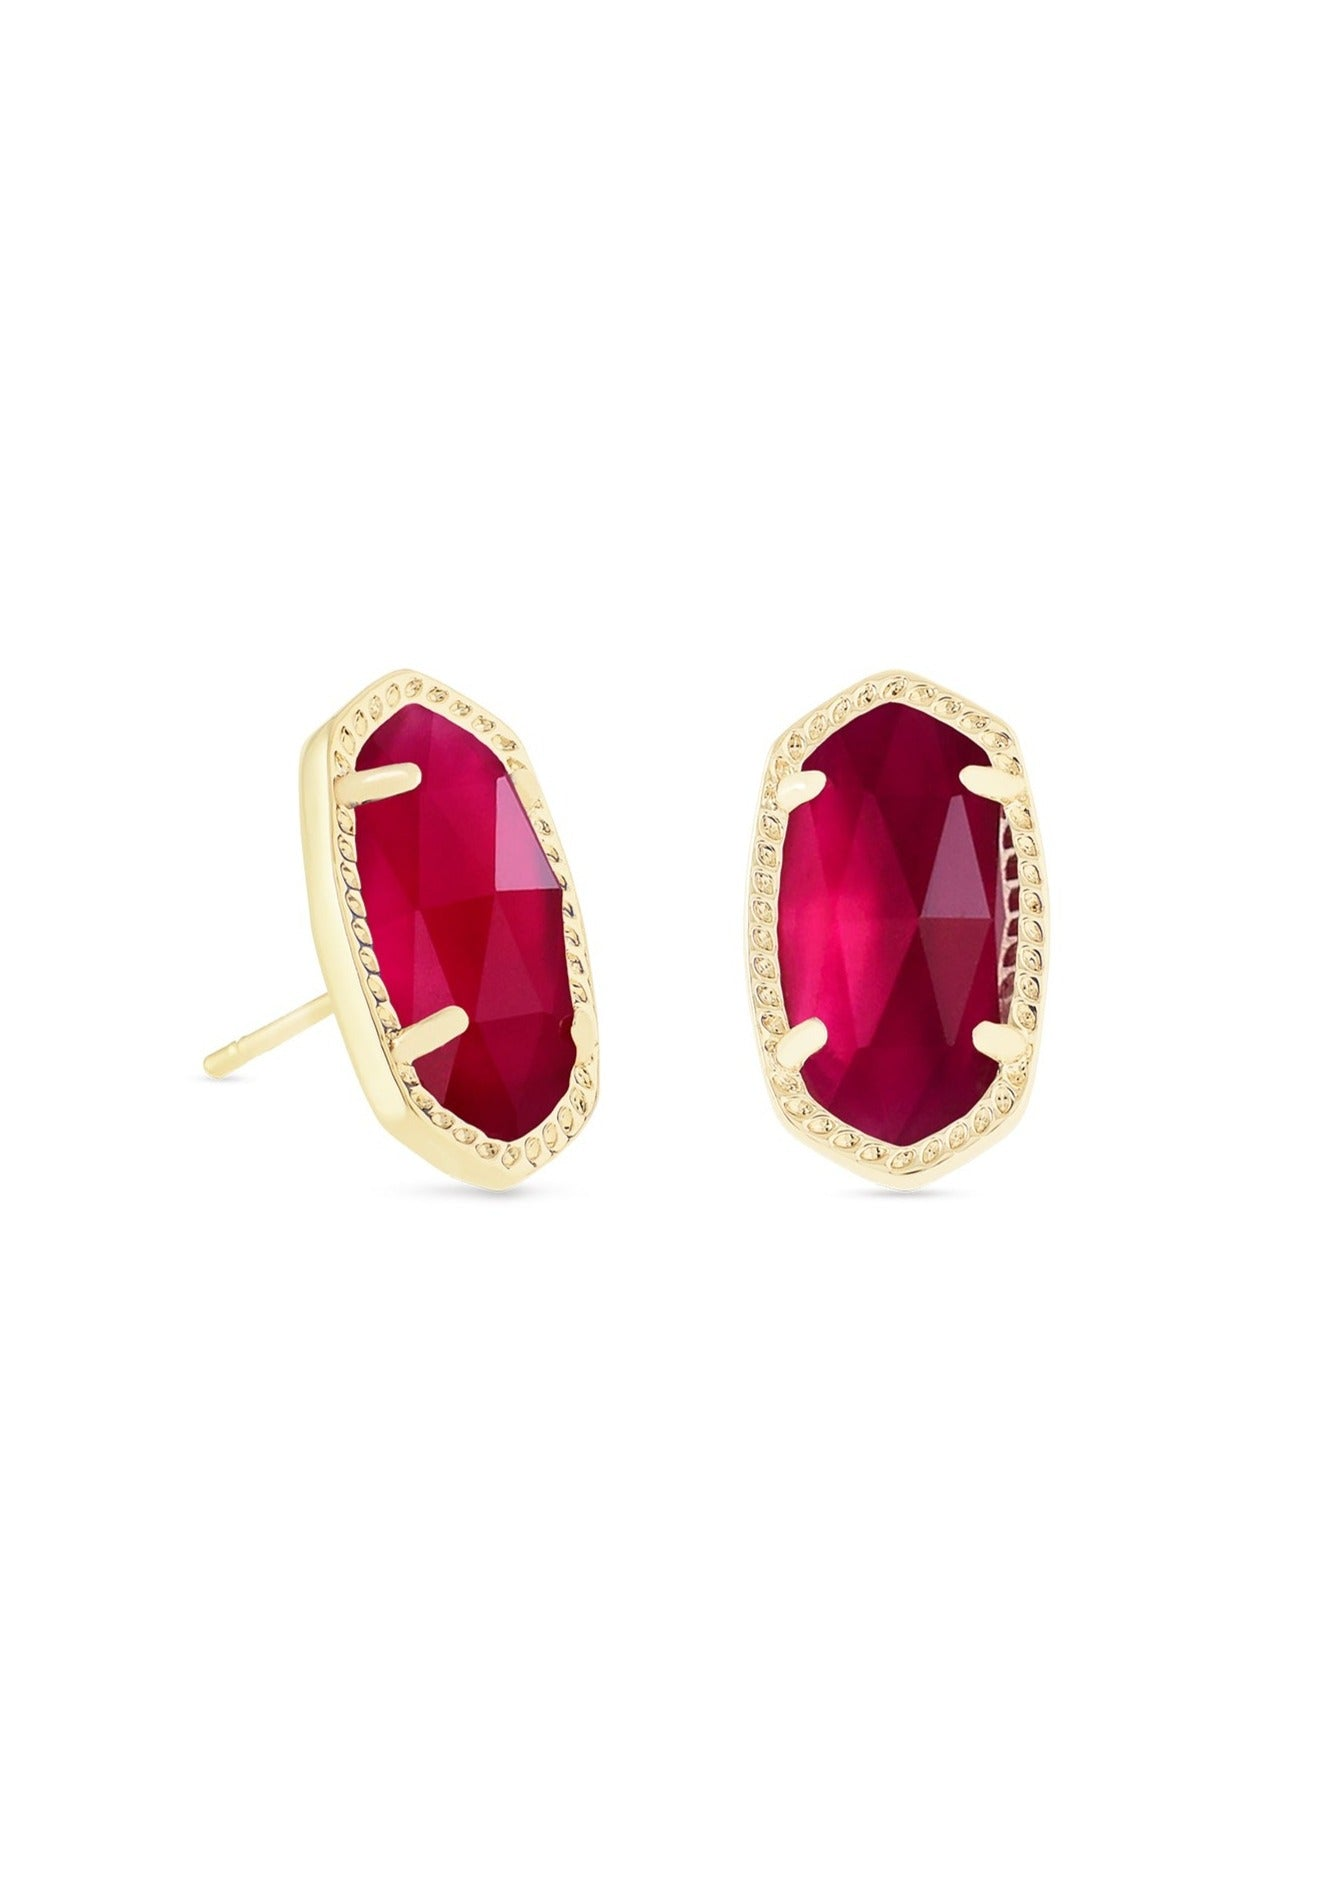 Kendra Scott Ellie Earring - Gold Berry Illusion